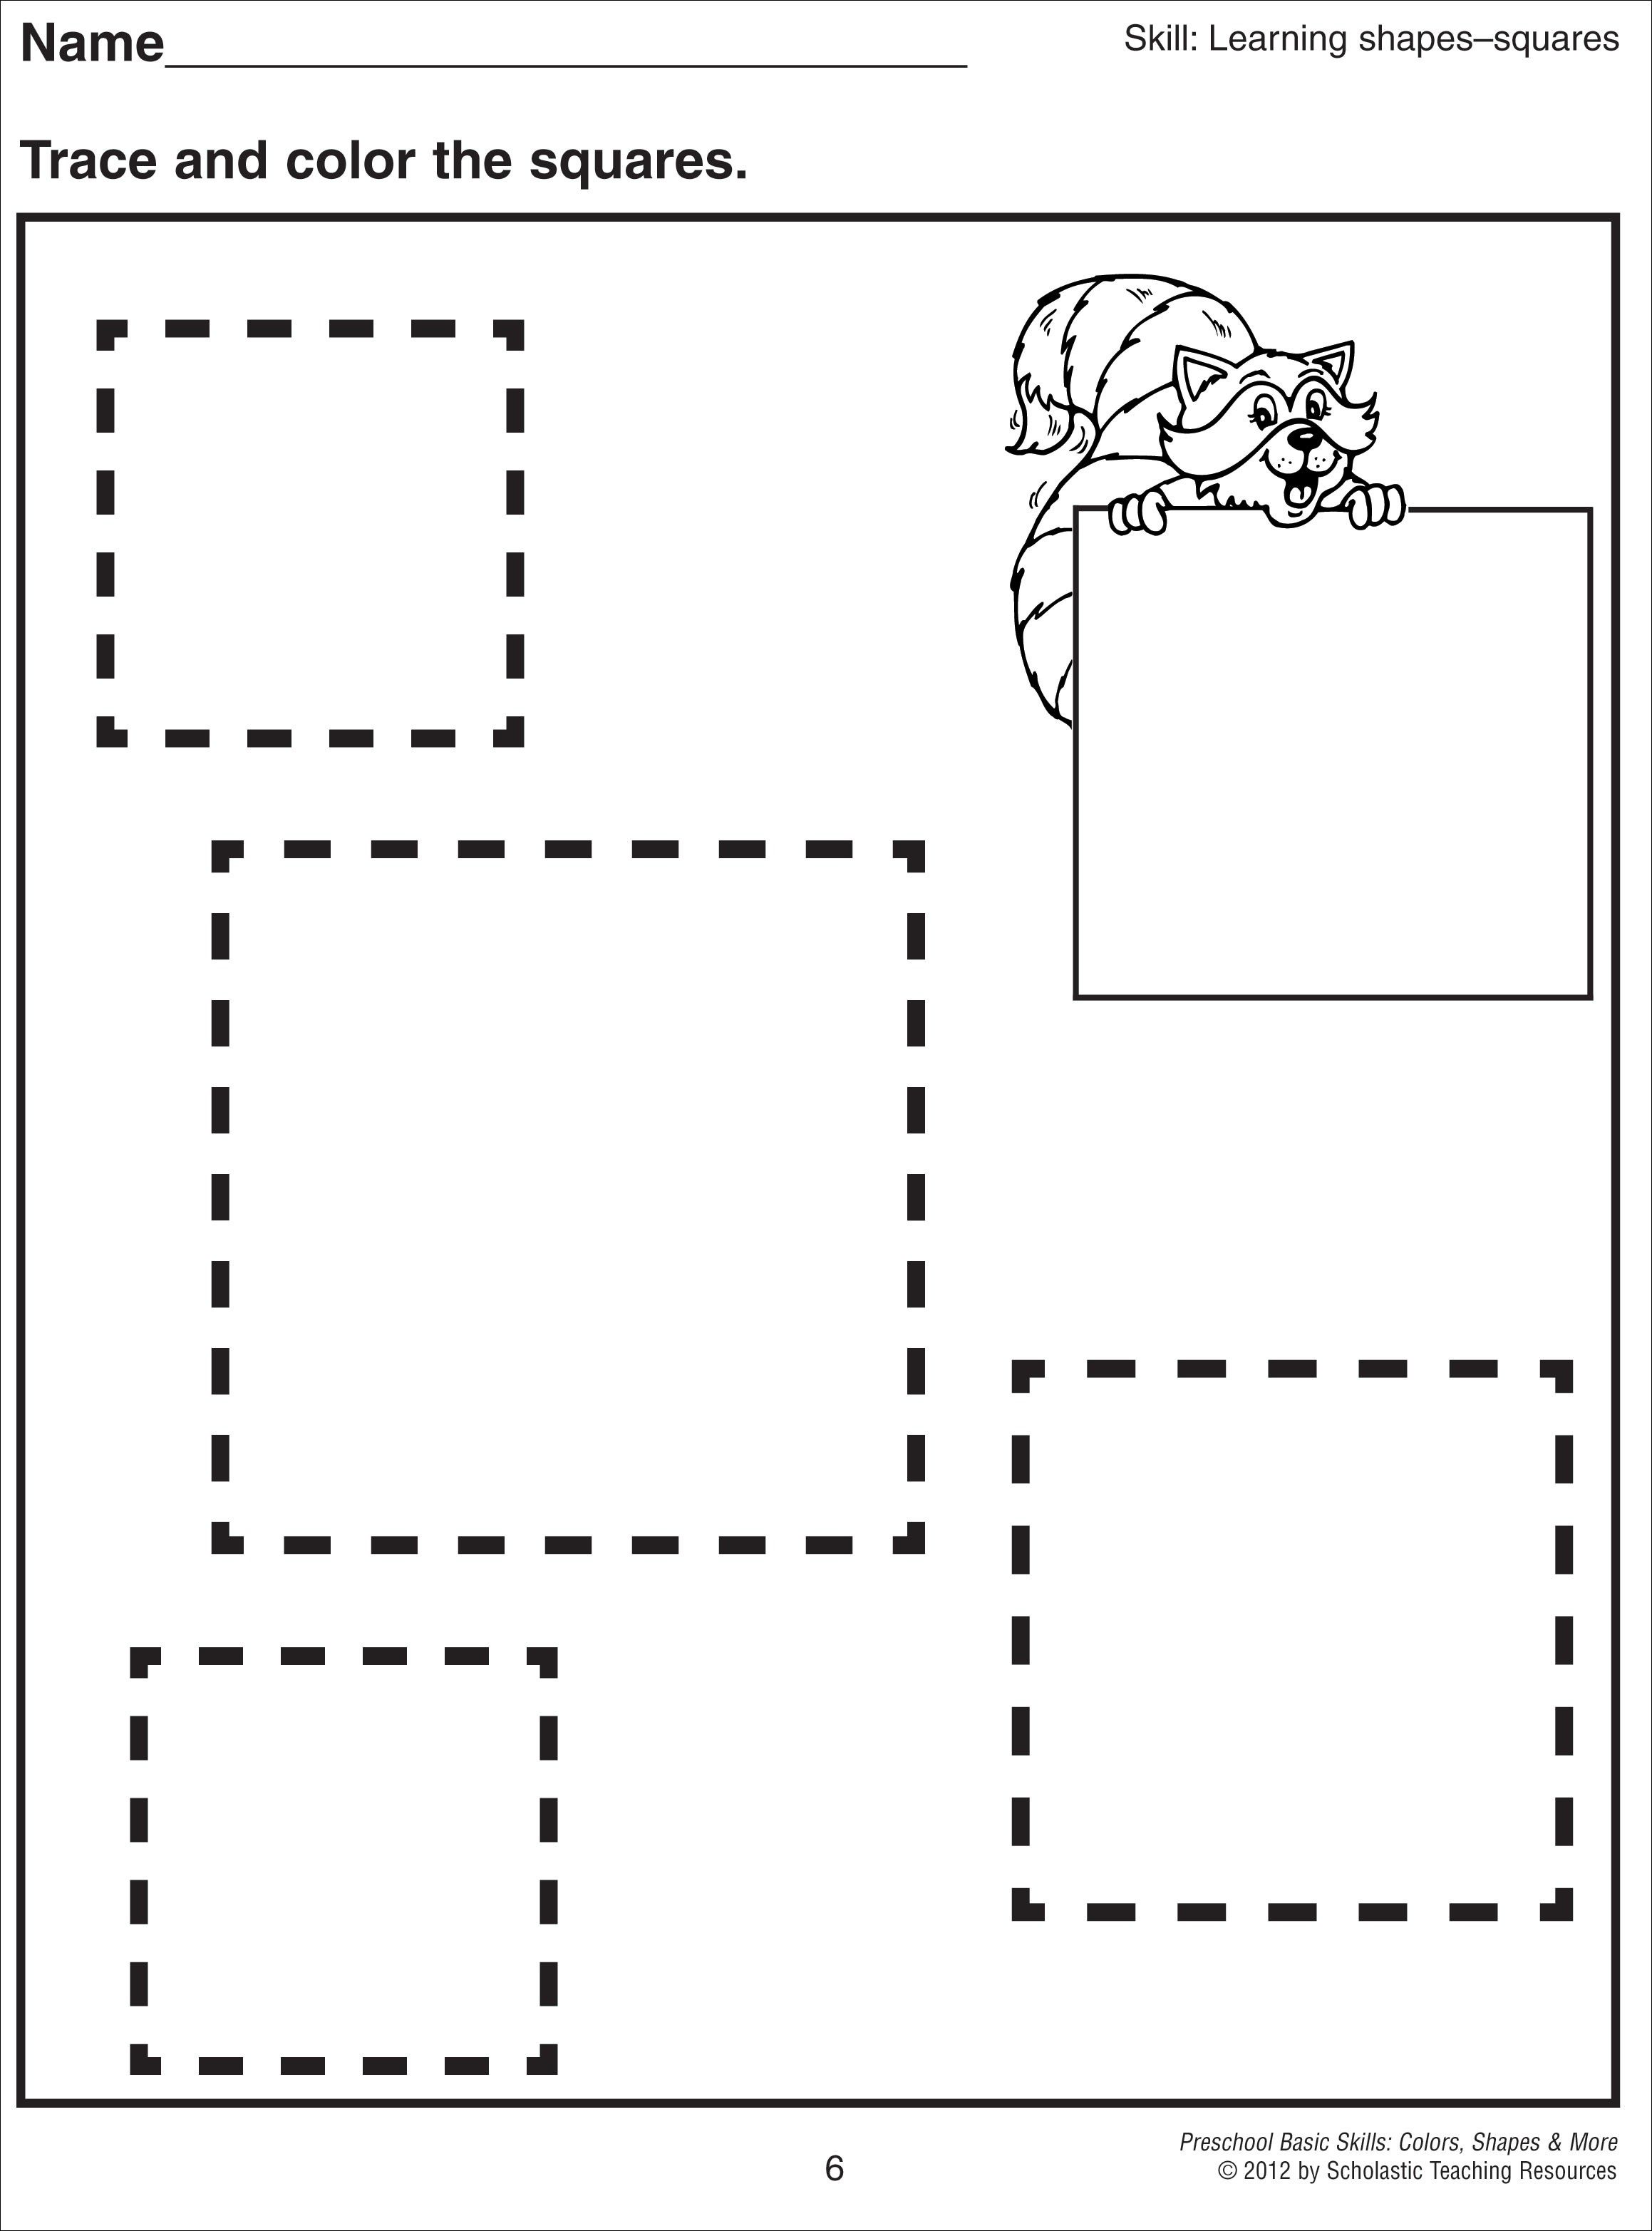 Square Tracing Worksheet Shapes and lines – Difference of Two Squares Worksheet